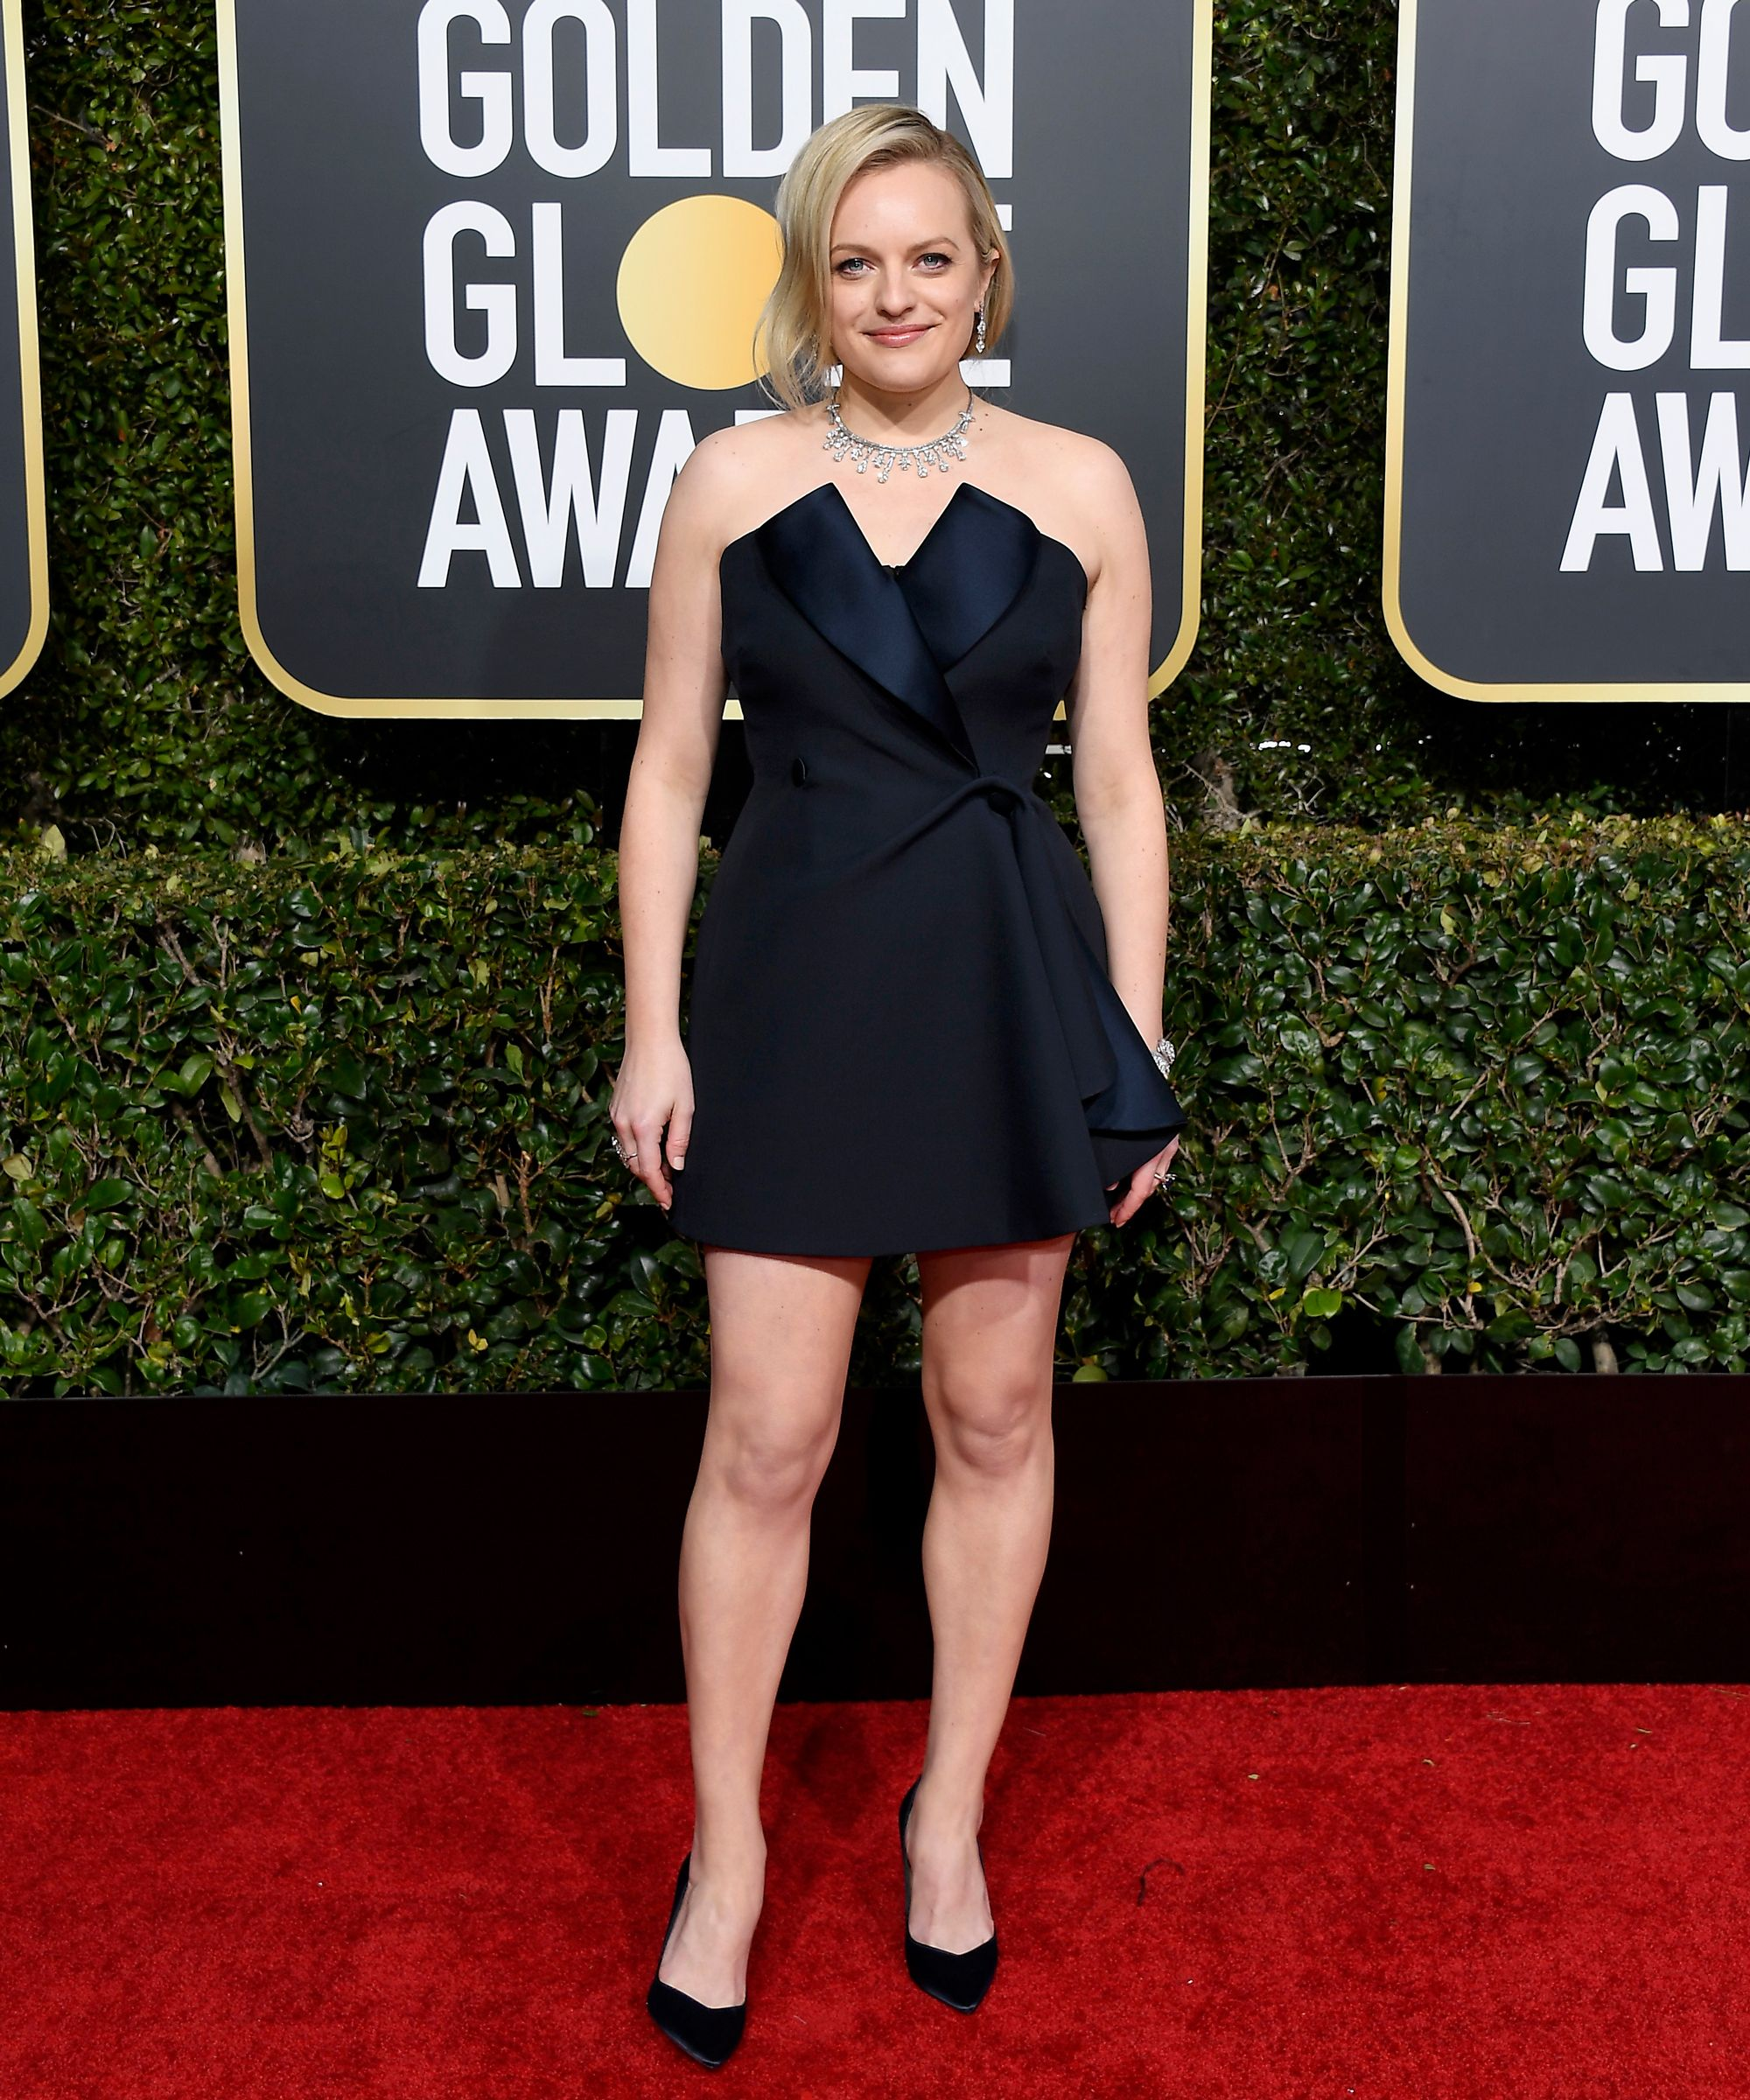 Refinery29: Elisabeth Moss at the 2019 Golden Globes • January 6, 2019